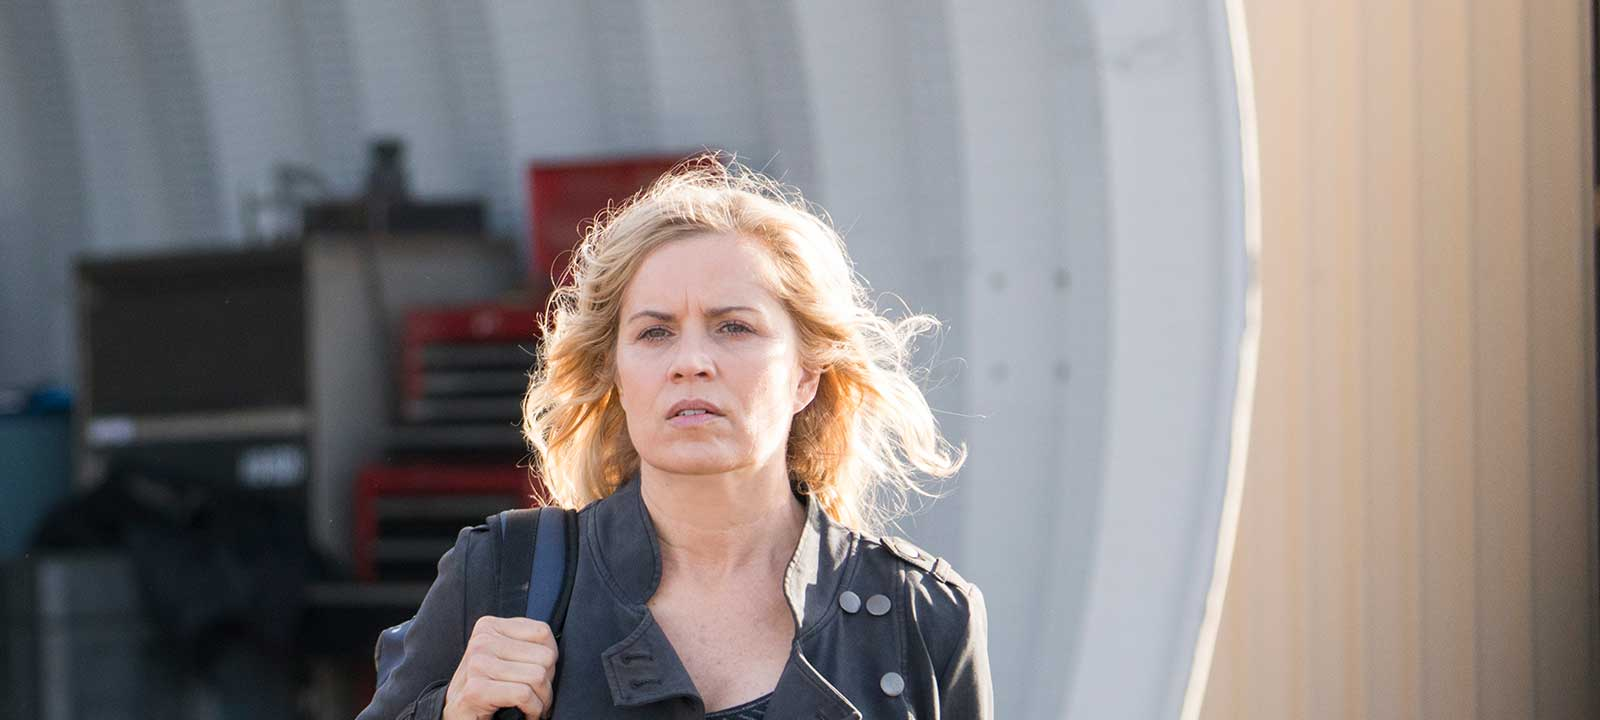 fear-the-walking-dead-episode-301-madison-dickens-800×600-interview